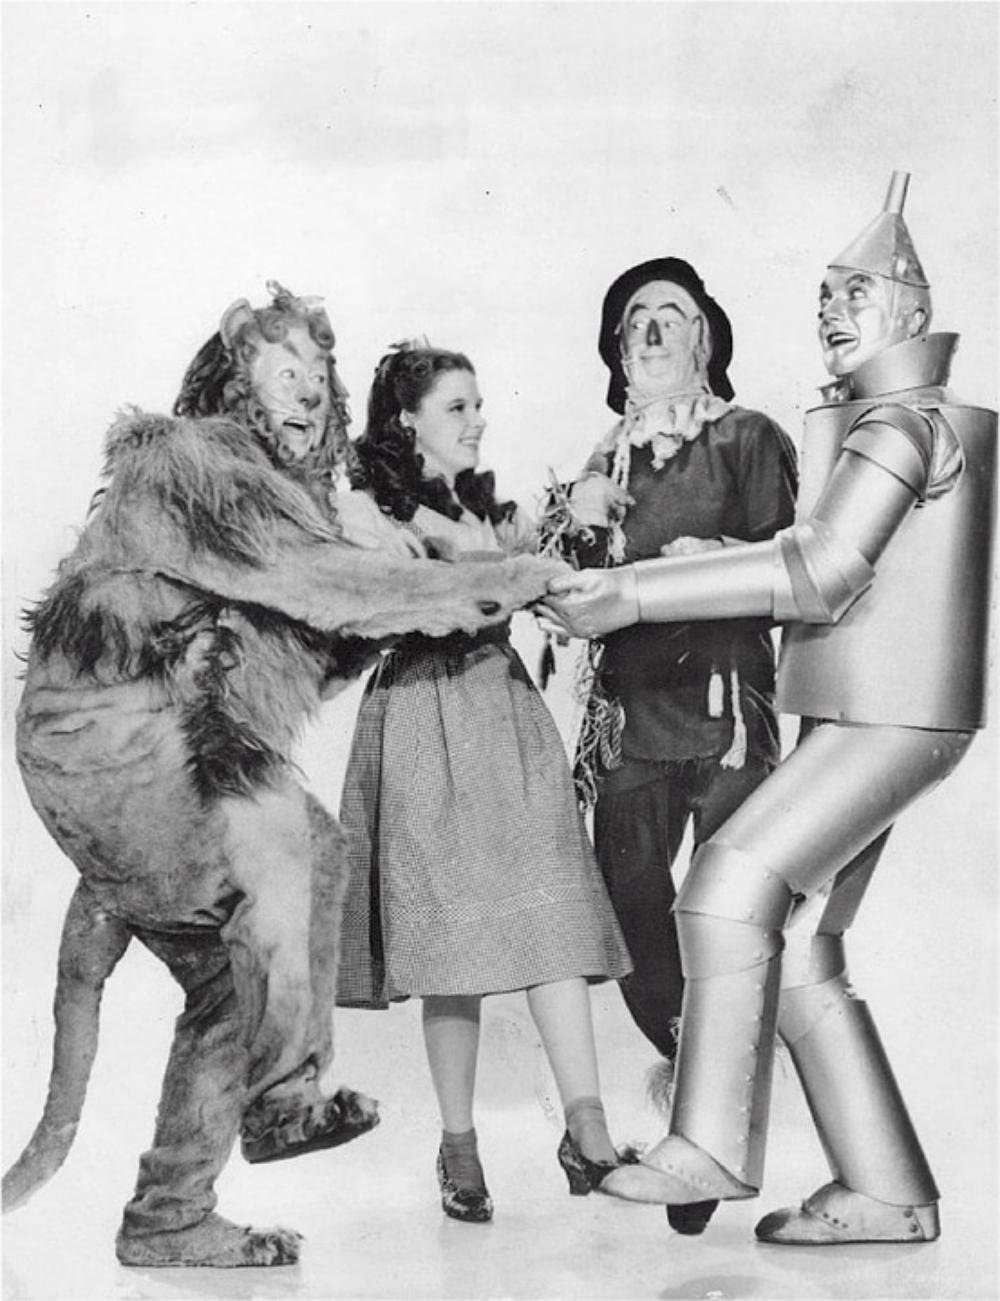 Laminated 24x31 inches Poster: The Wizard of Oz Bert LAHR Cowardly Lion Judy Garland Dorothy Ray Bolger Scarecrow Jack Haley Tinman Musical Fantasy Film Movie Motion Picture Cinema Courage